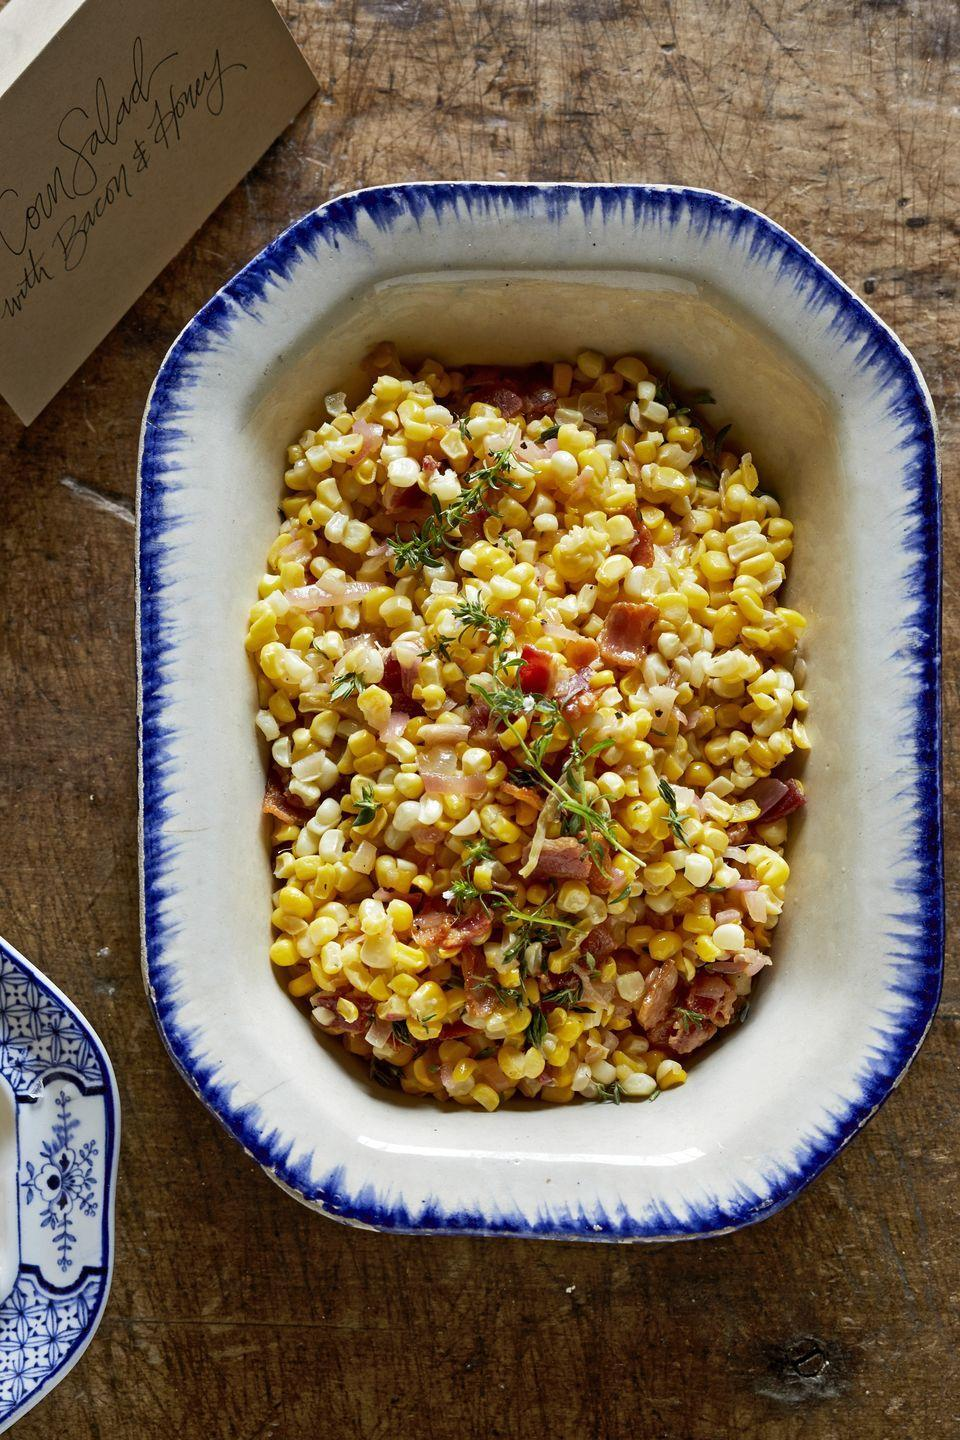 "<p>Is there a better combination than bacon and honey? We'd argue yes, because this salad includes sweet corn too.</p><p><strong><a href=""https://www.countryliving.com/food-drinks/a29134232/corn-salad-with-bacon-and-honey/"" rel=""nofollow noopener"" target=""_blank"" data-ylk=""slk:Get the recipe"" class=""link rapid-noclick-resp"">Get the recipe</a>.</strong></p><p><strong><strong><a class=""link rapid-noclick-resp"" href=""https://www.amazon.com/Lipper-International-Salad-Hands-Brown/dp/B00FSBE82M/?tag=syn-yahoo-20&ascsubtag=%5Bartid%7C10050.g.896%5Bsrc%7Cyahoo-us"" rel=""nofollow noopener"" target=""_blank"" data-ylk=""slk:SHOP SALAD BOWLS"">SHOP SALAD BOWLS</a></strong></strong></p>"